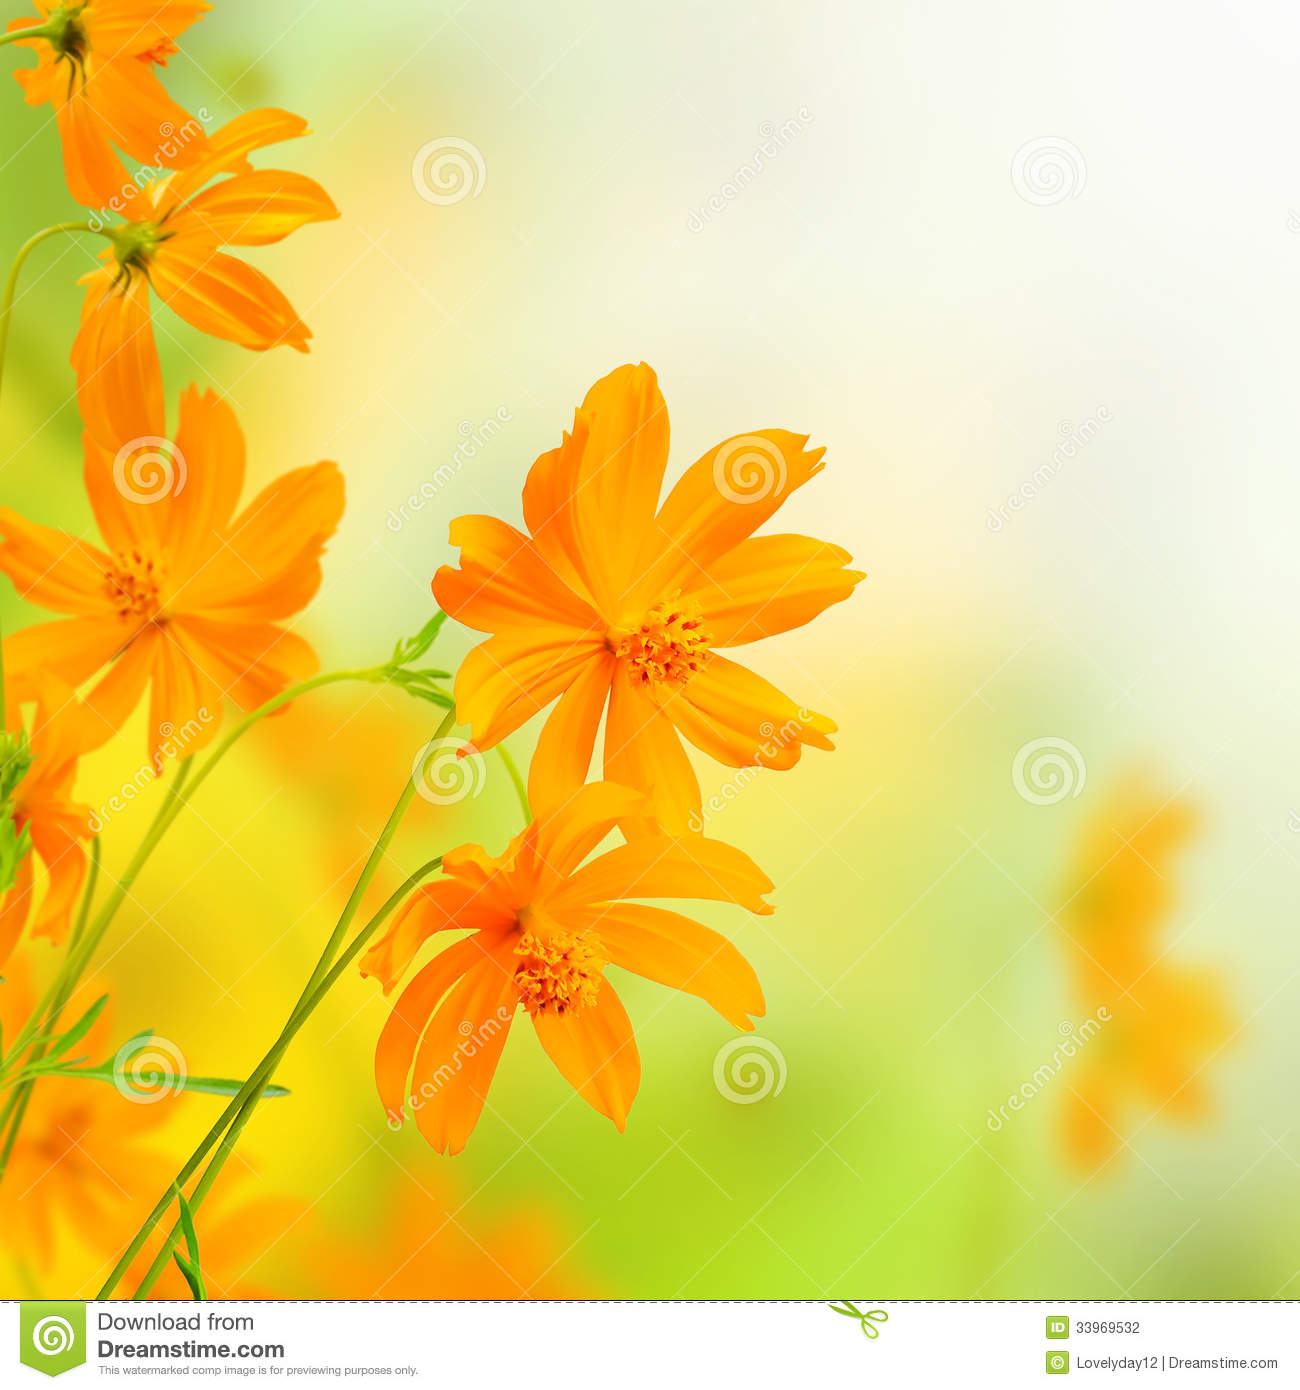 Beautiful flowers yellow border floral design stock photo image beautiful flowers yellow border floral design izmirmasajfo